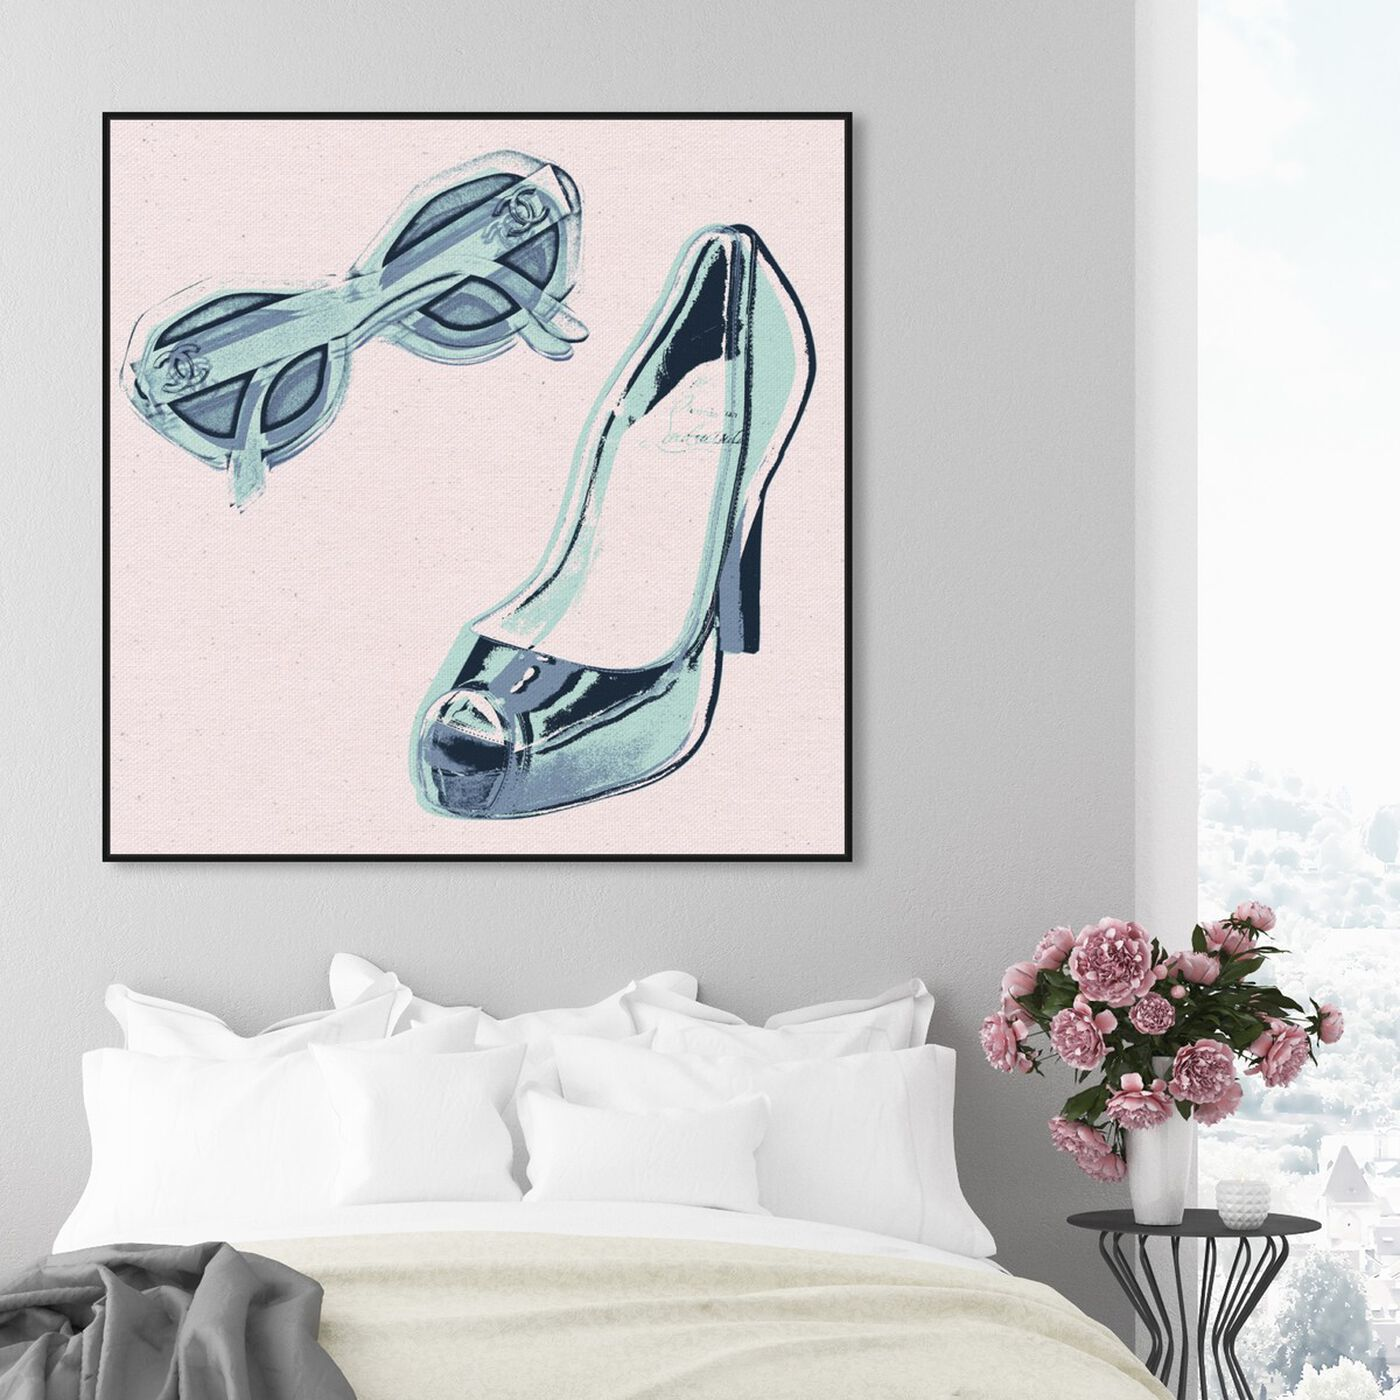 Hanging view of All She Needs at the Sea featuring fashion and glam and shoes art.